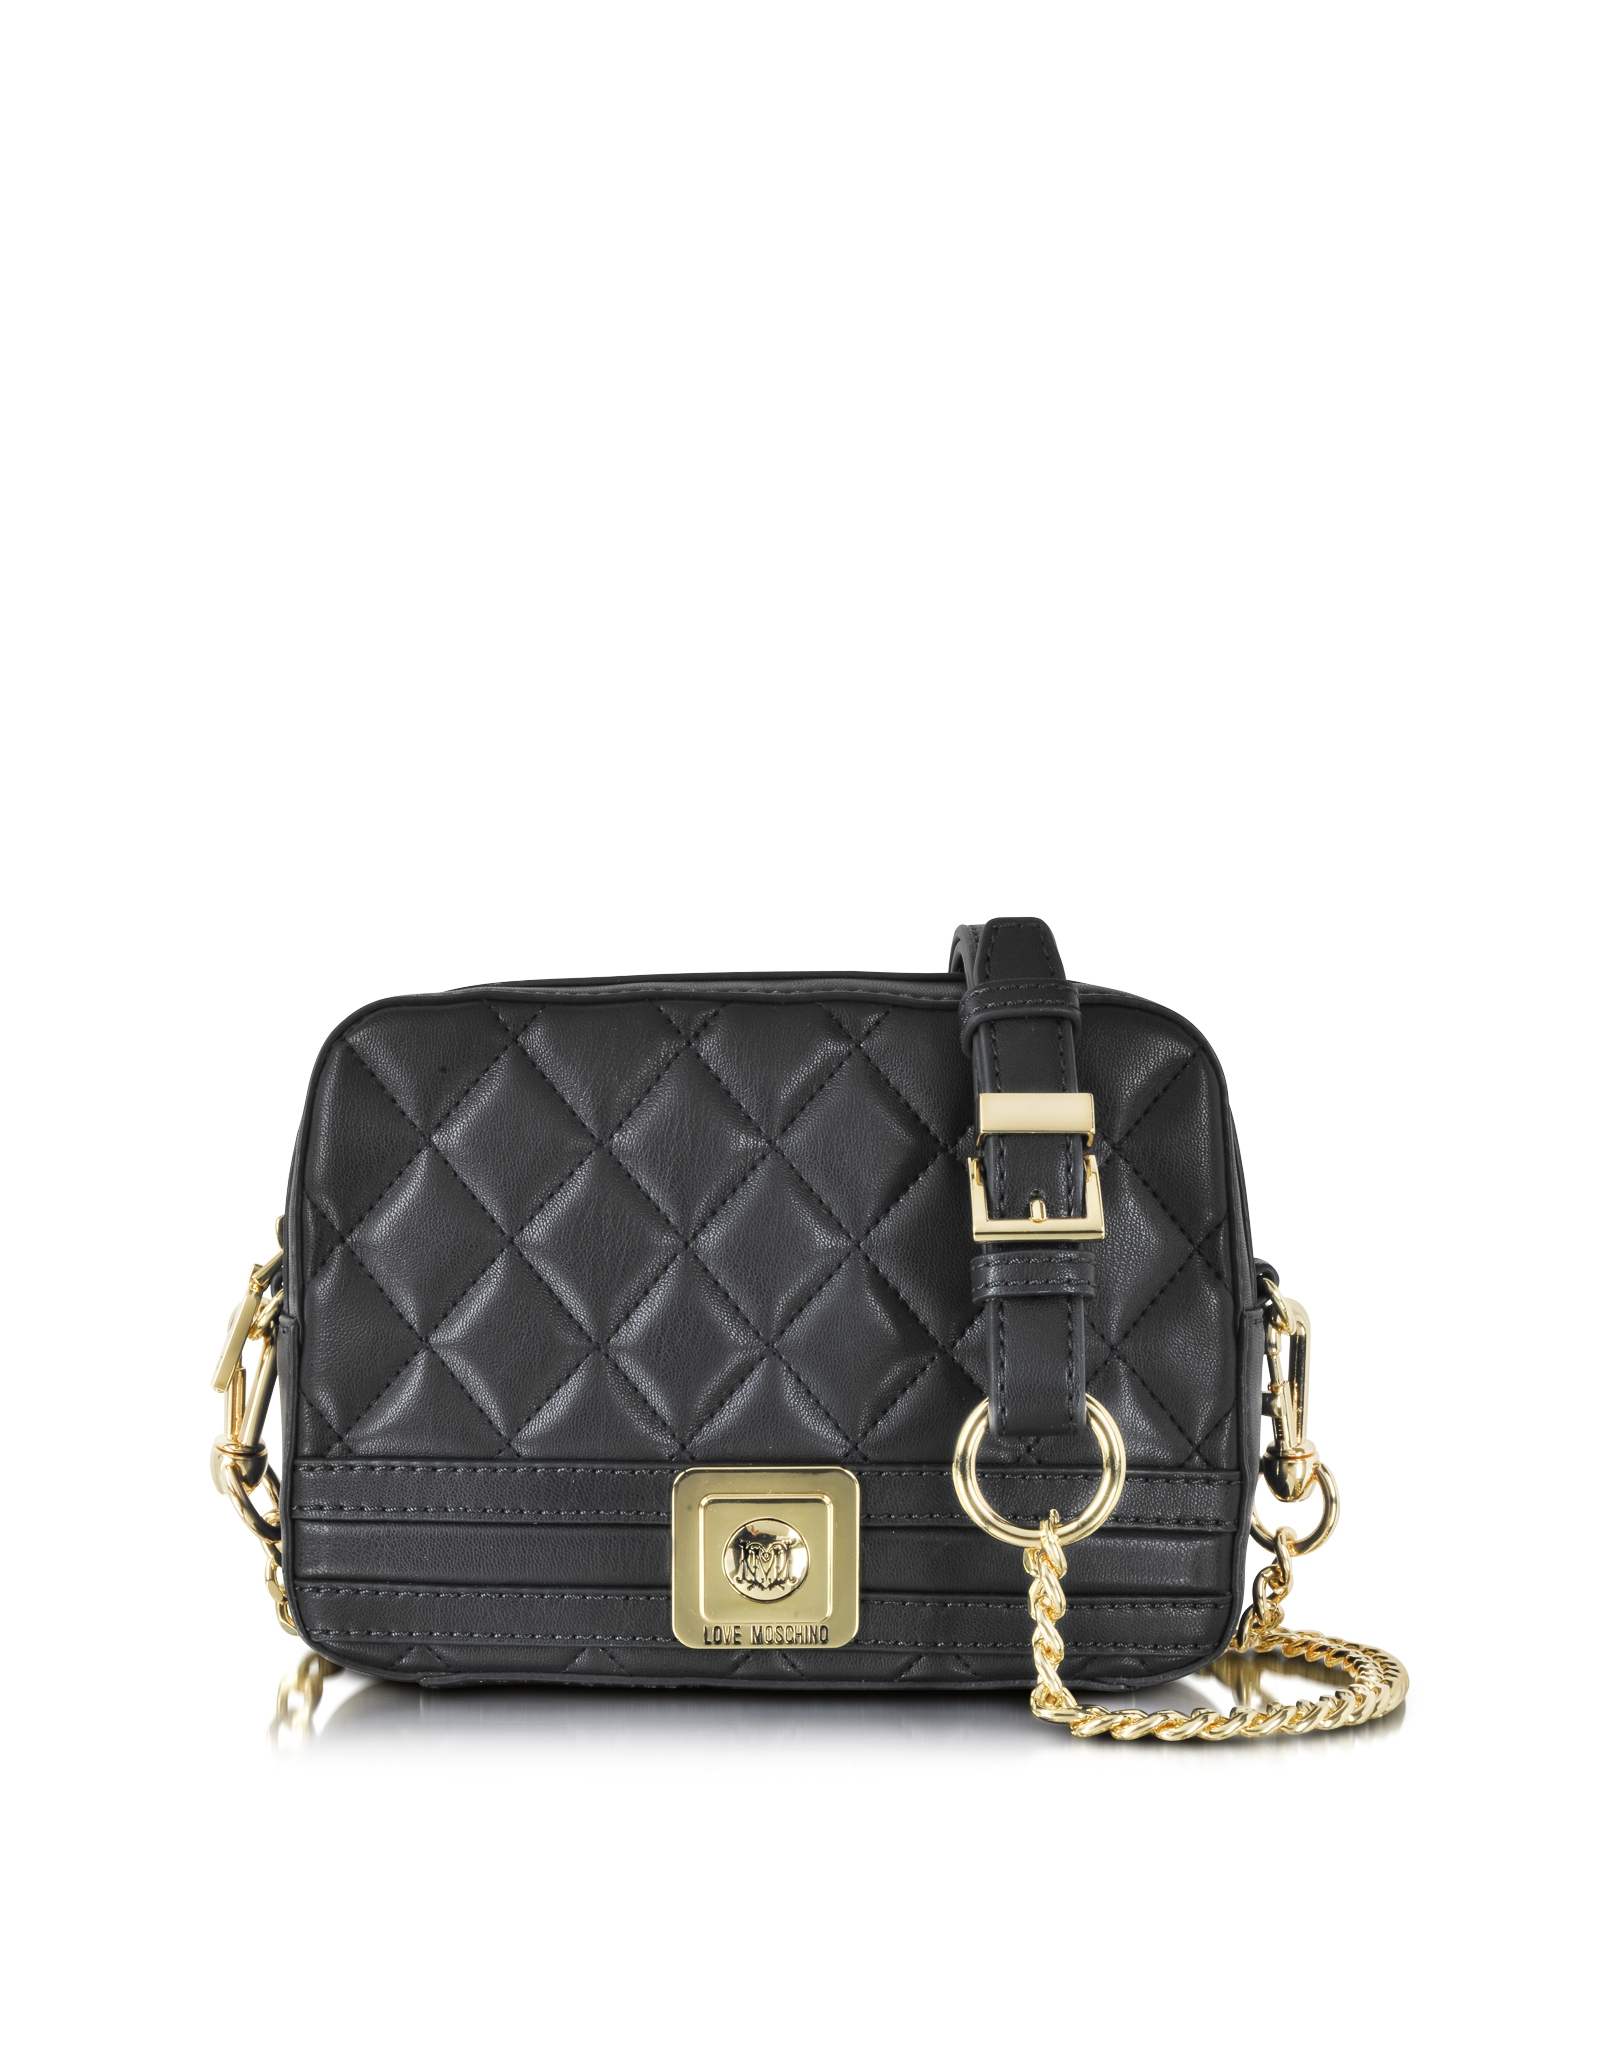 8c5aa4d9e04b Love Moschino Quilted Eco Leather Crossbody Bag in Black - Lyst